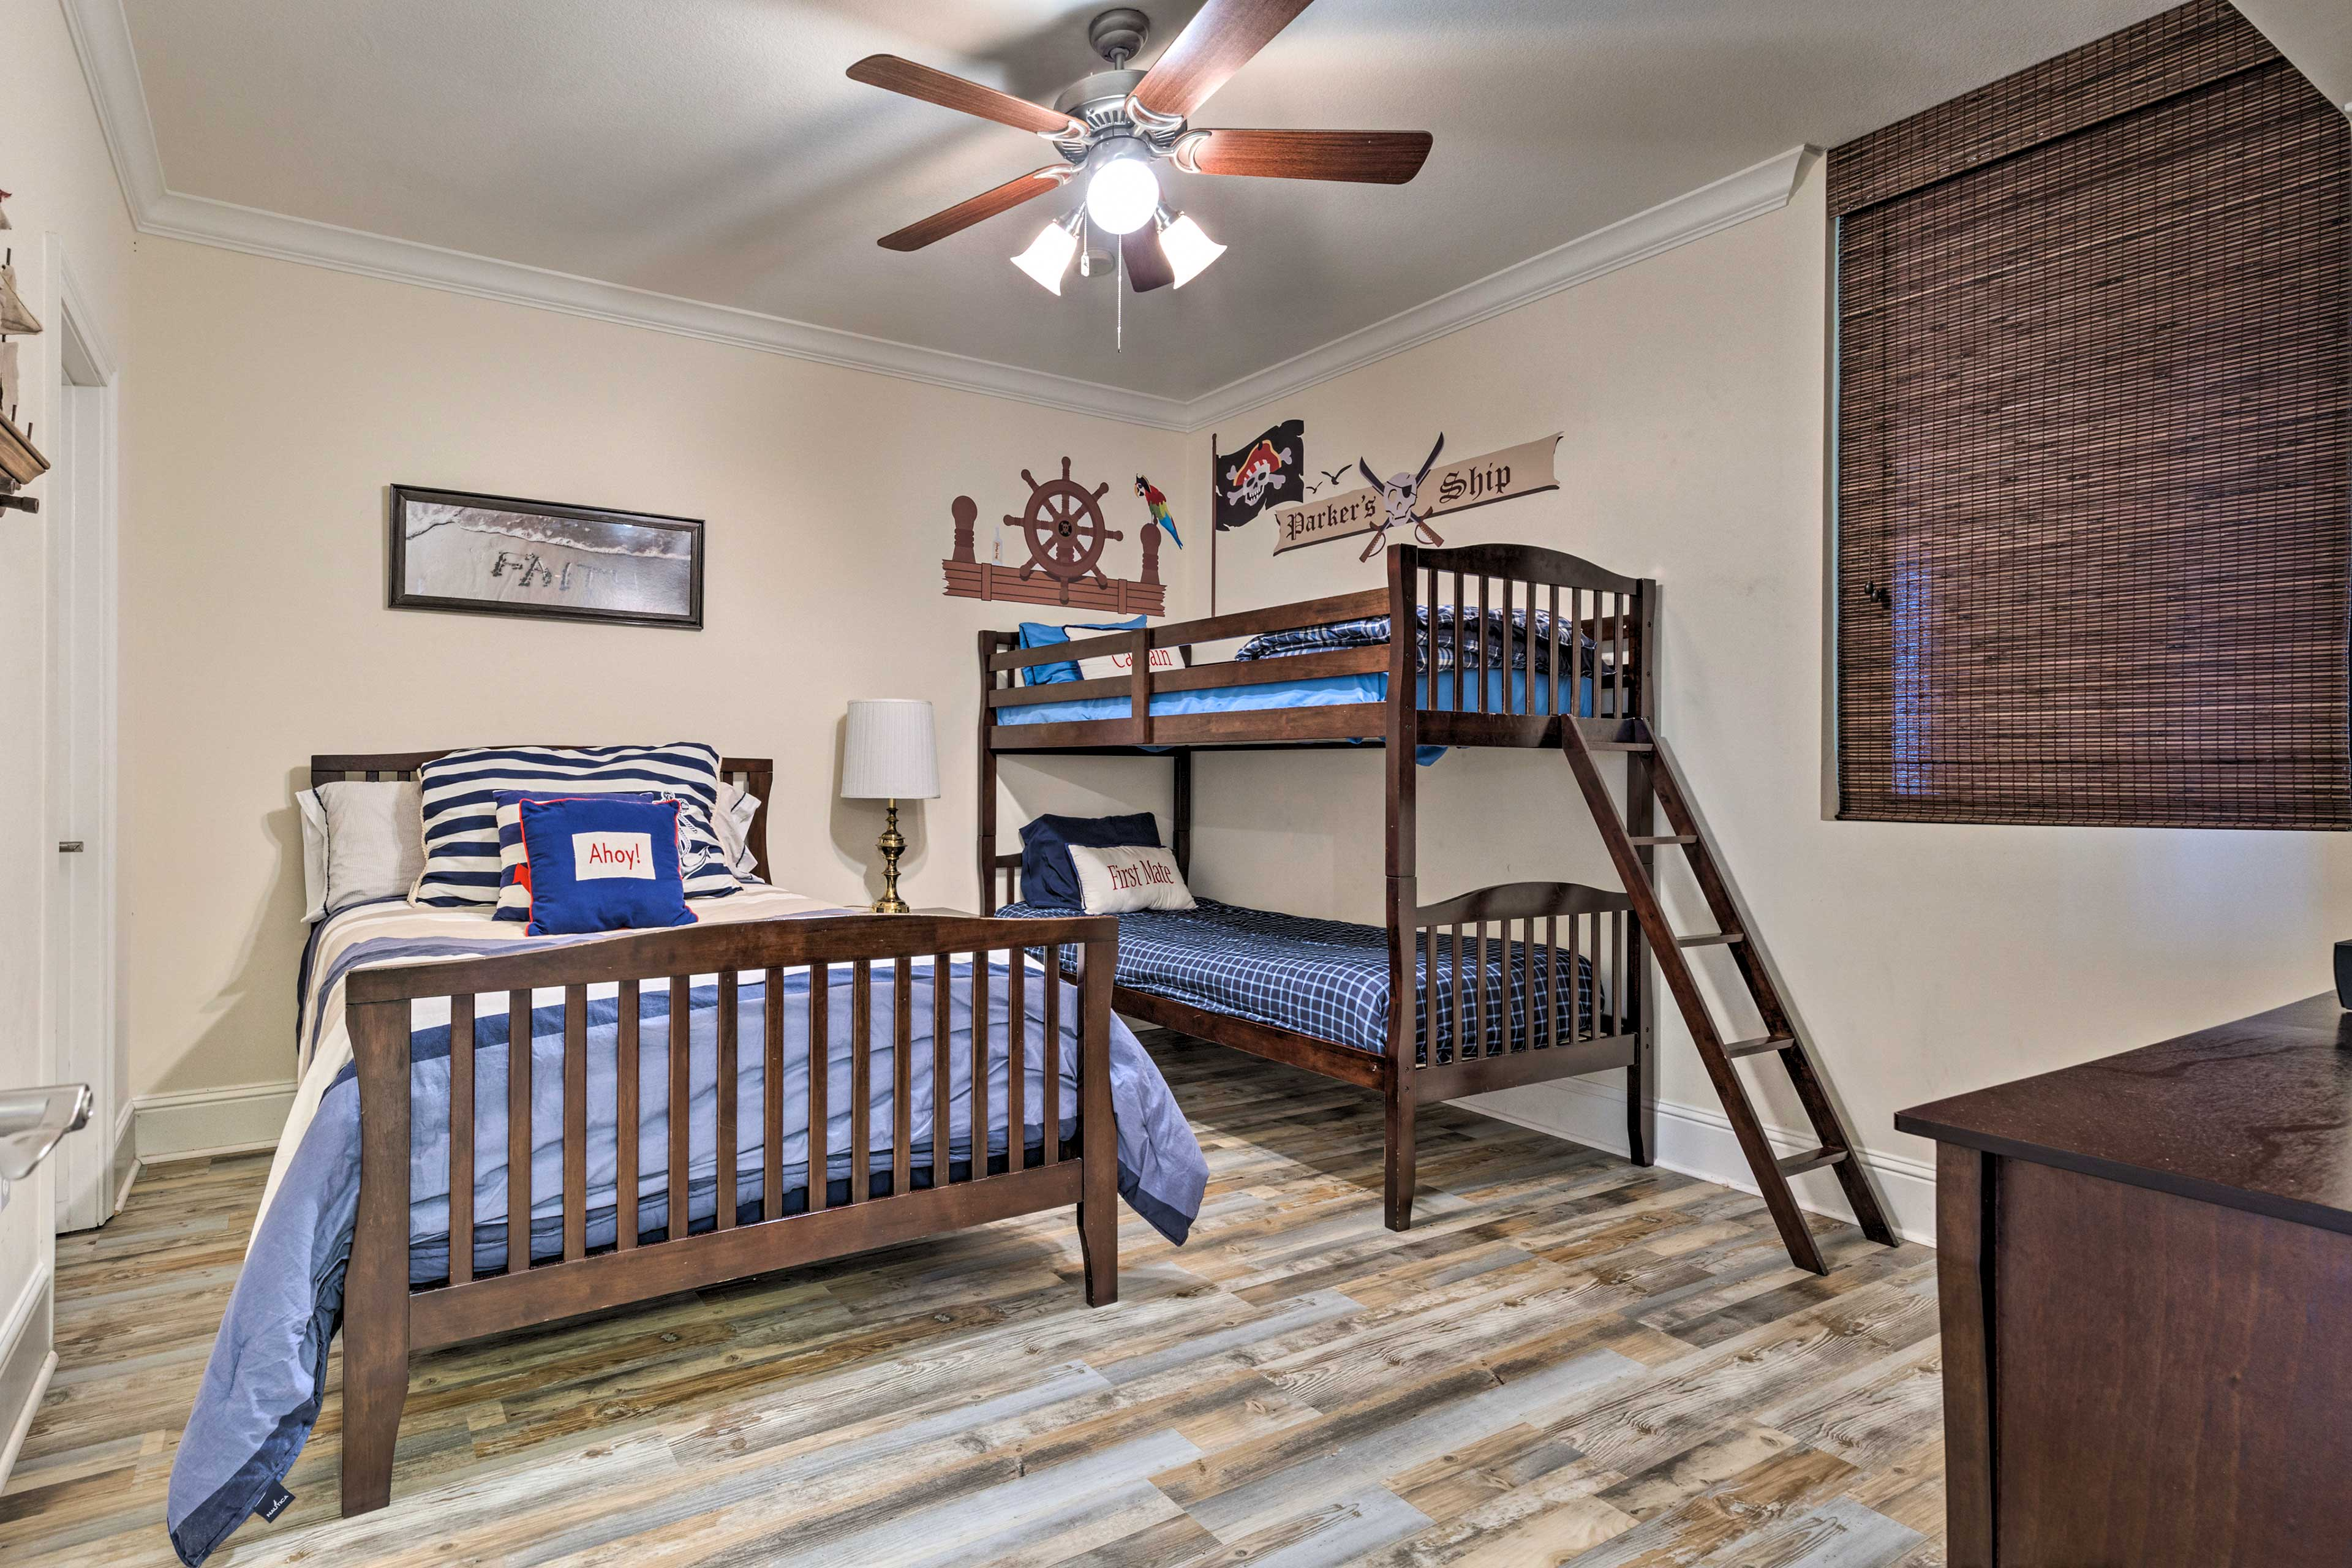 Kids will love sharing this pirate-themed bedroom.